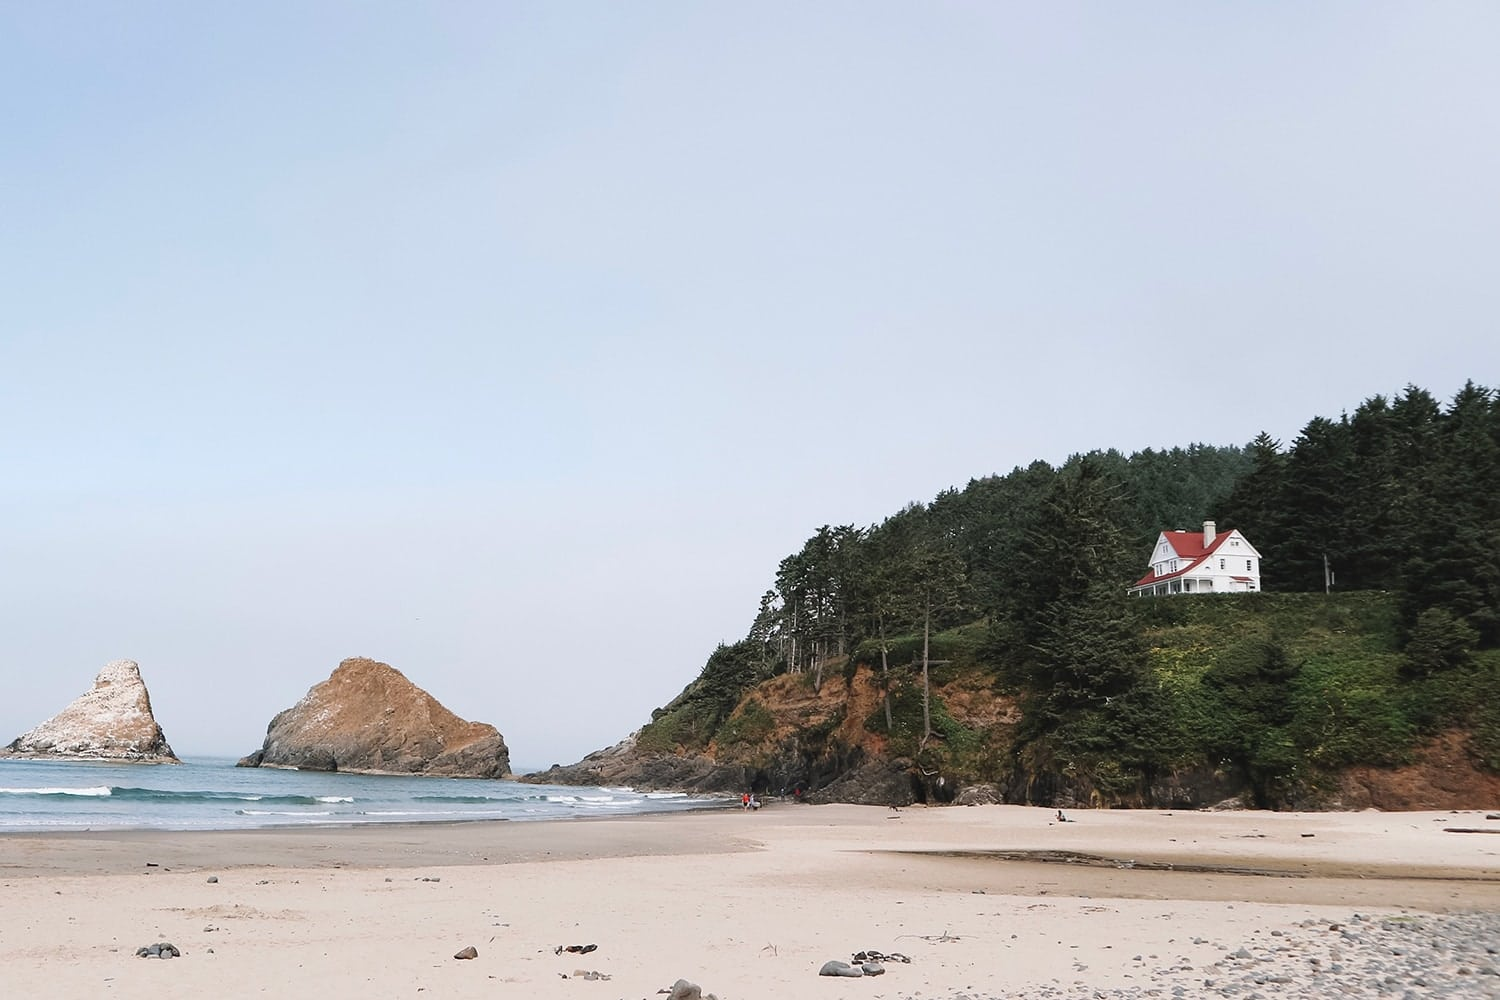 Heceta beach and Lighthouse on the Oregon Coast - Pacific Northwest travel guide by Meg O. on the Go